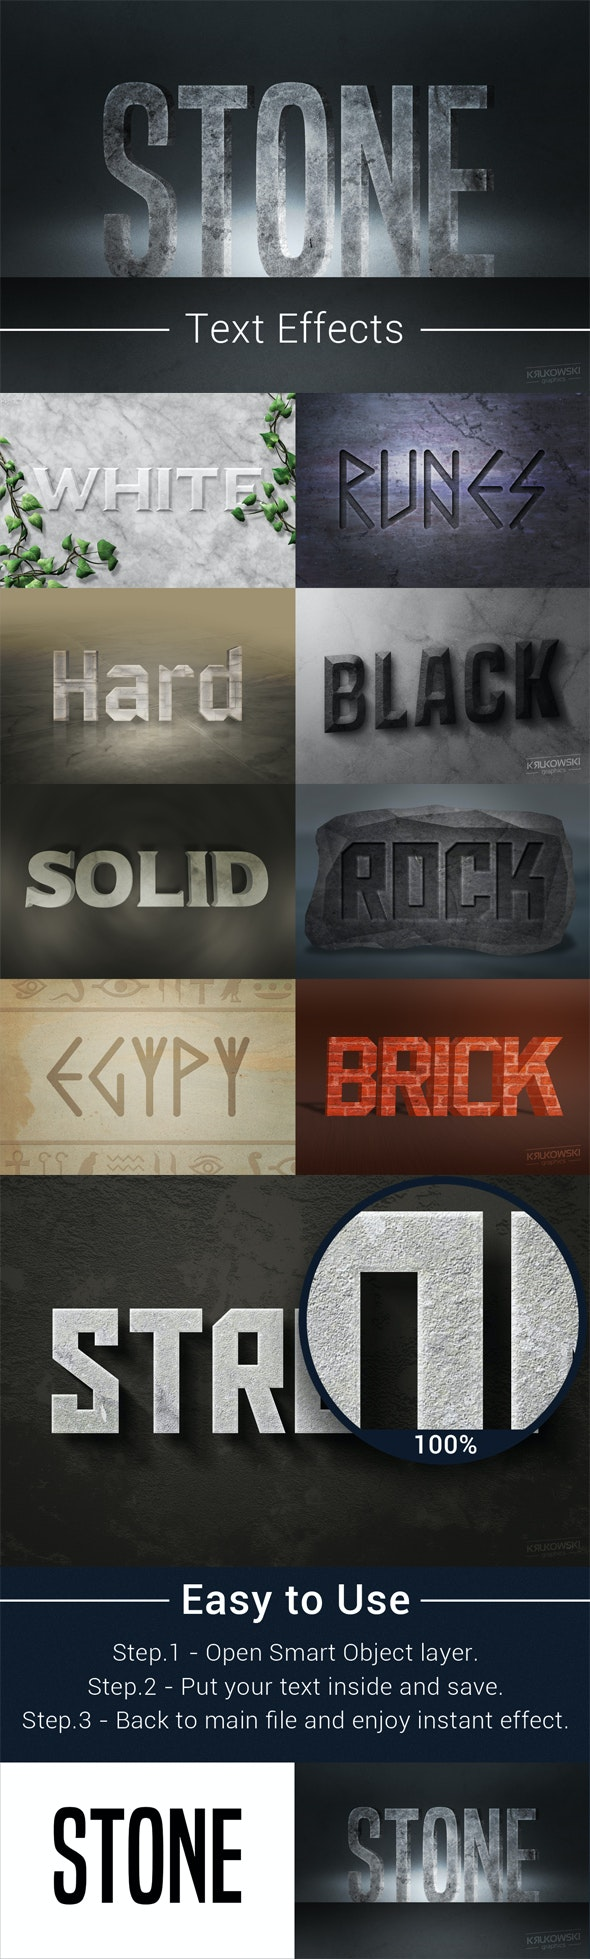 Stone Text Effects Mockup - Text Effects Actions